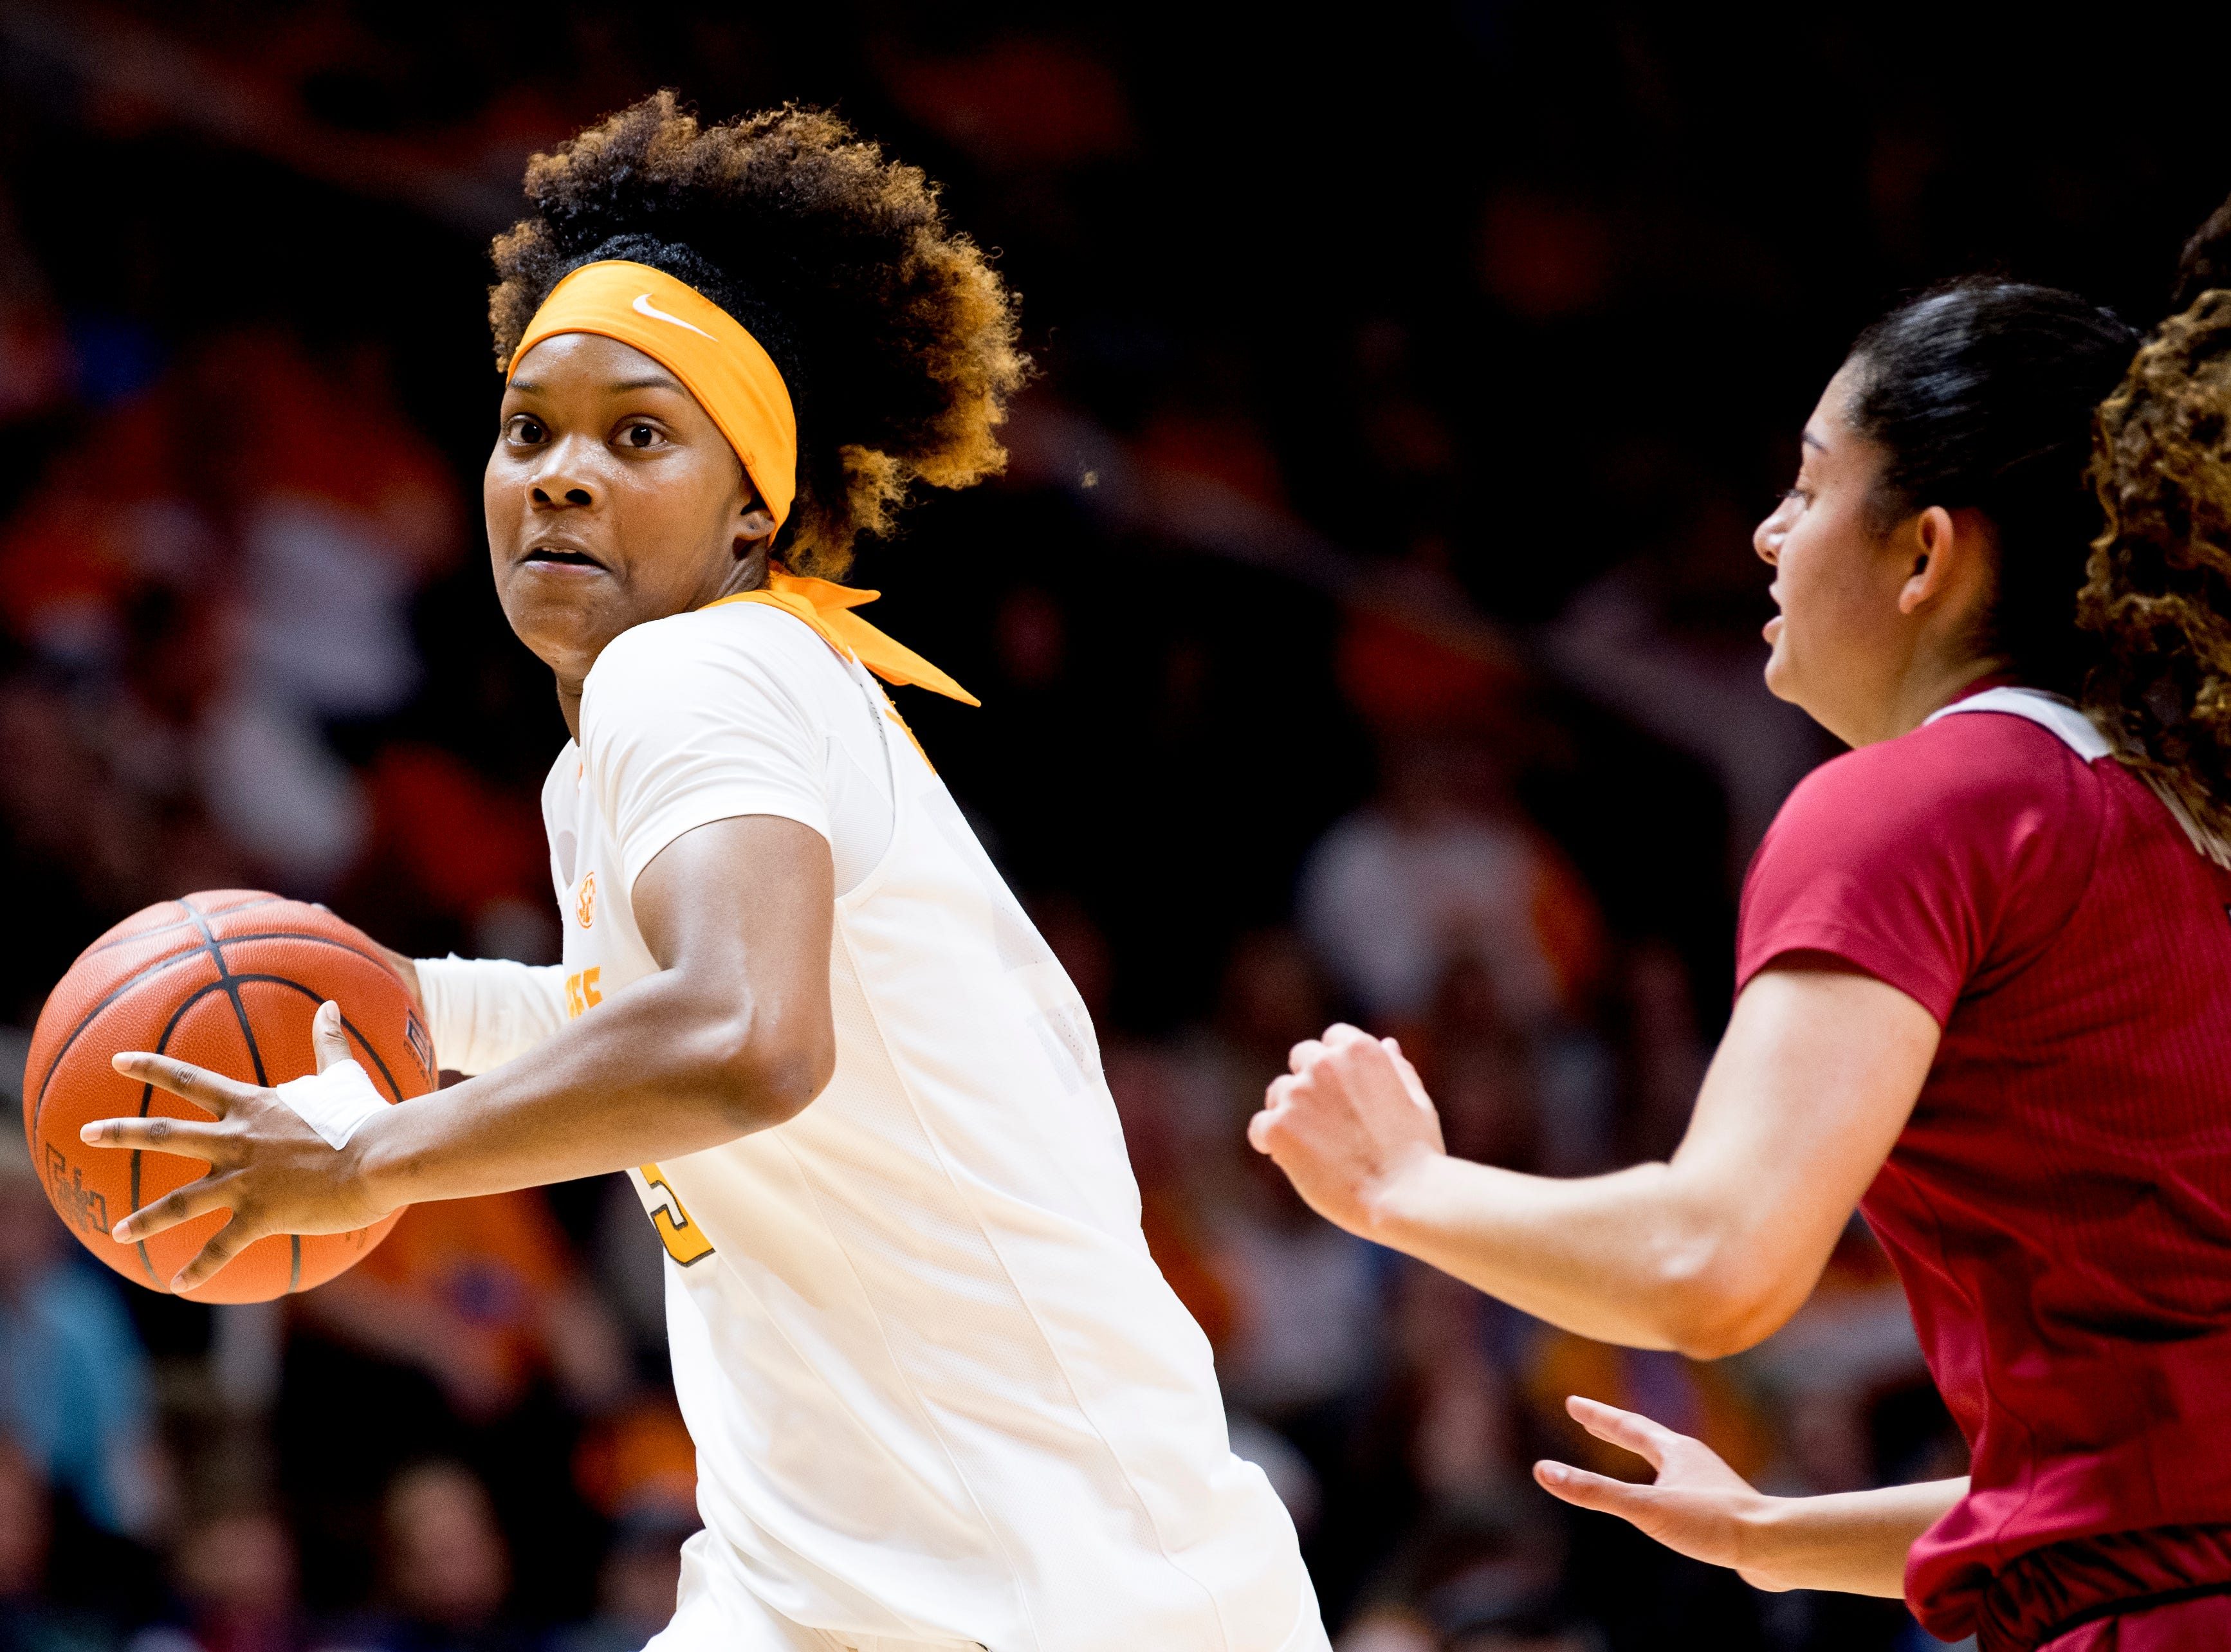 Tennessee guard Jazmine Massengill (13) dribbles the ball down the court past Arkansas point guard Jailyn Mason (14) during a game between Tennessee and Arkansas at Thompson-Boling Arena in , Tennessee on Monday, January 21, 2019.